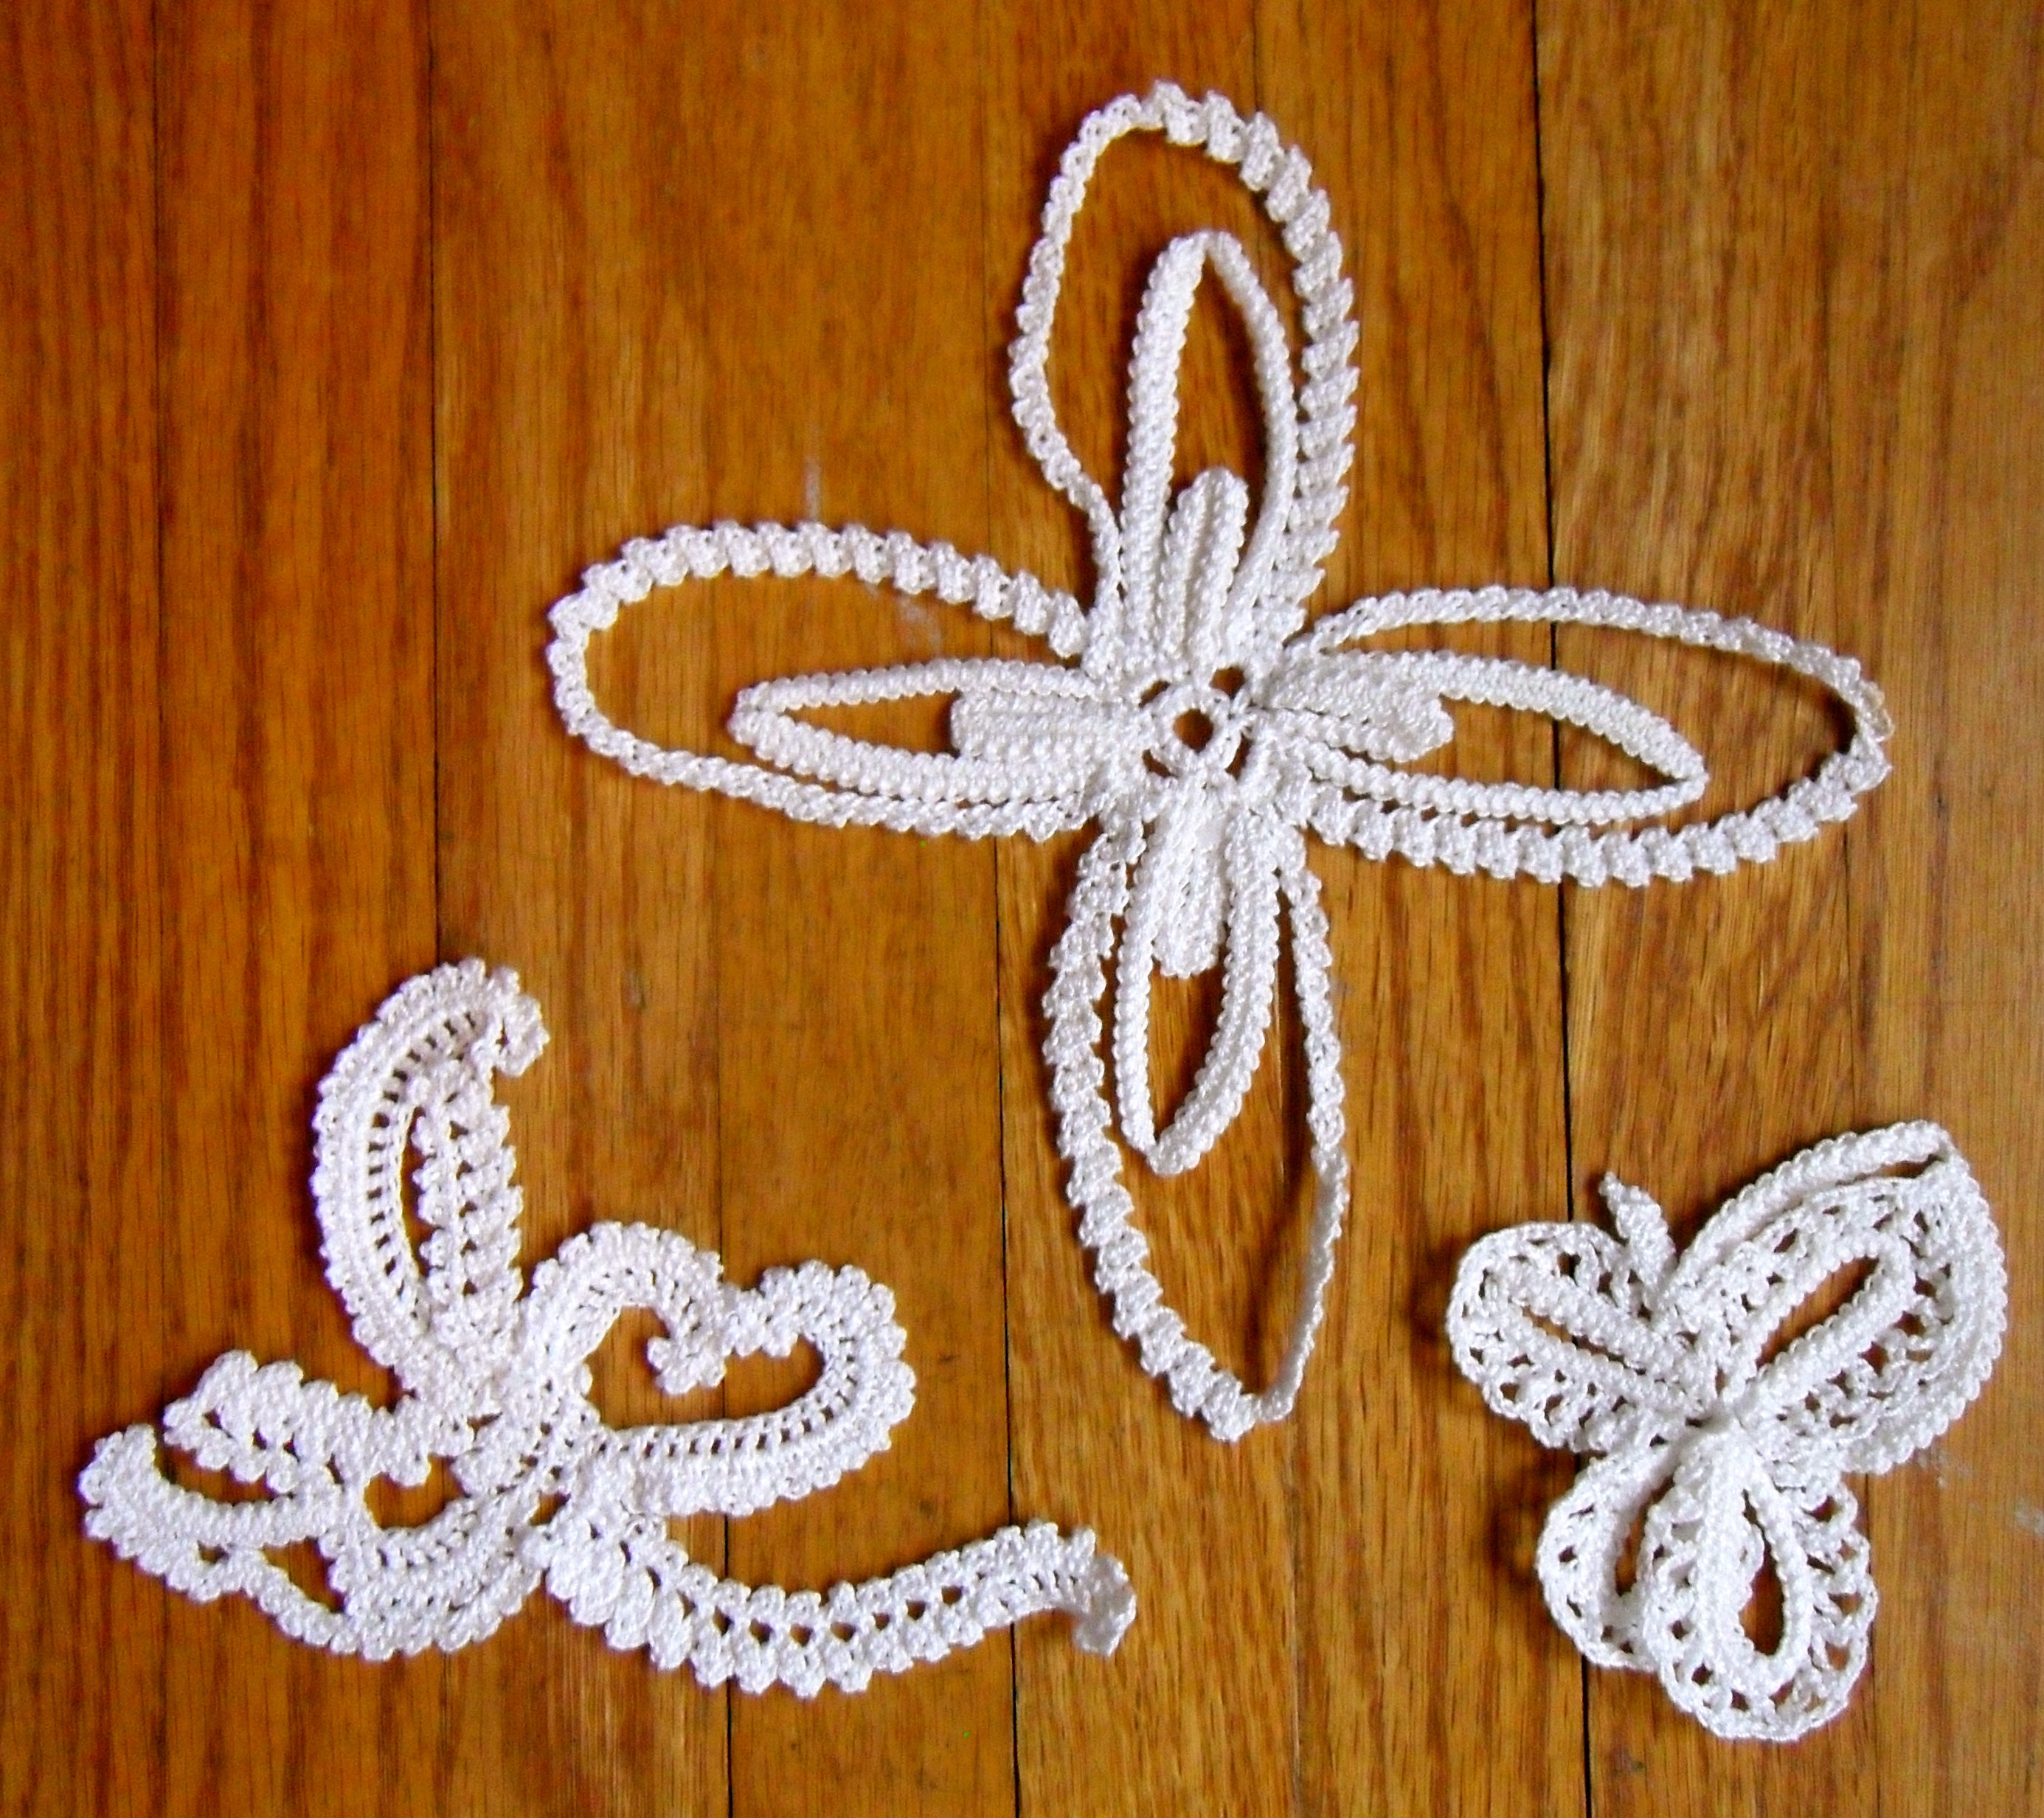 Crochet Cording Elegant Lace Crochet and Mom Of Marvelous 43 Images Crochet Cording